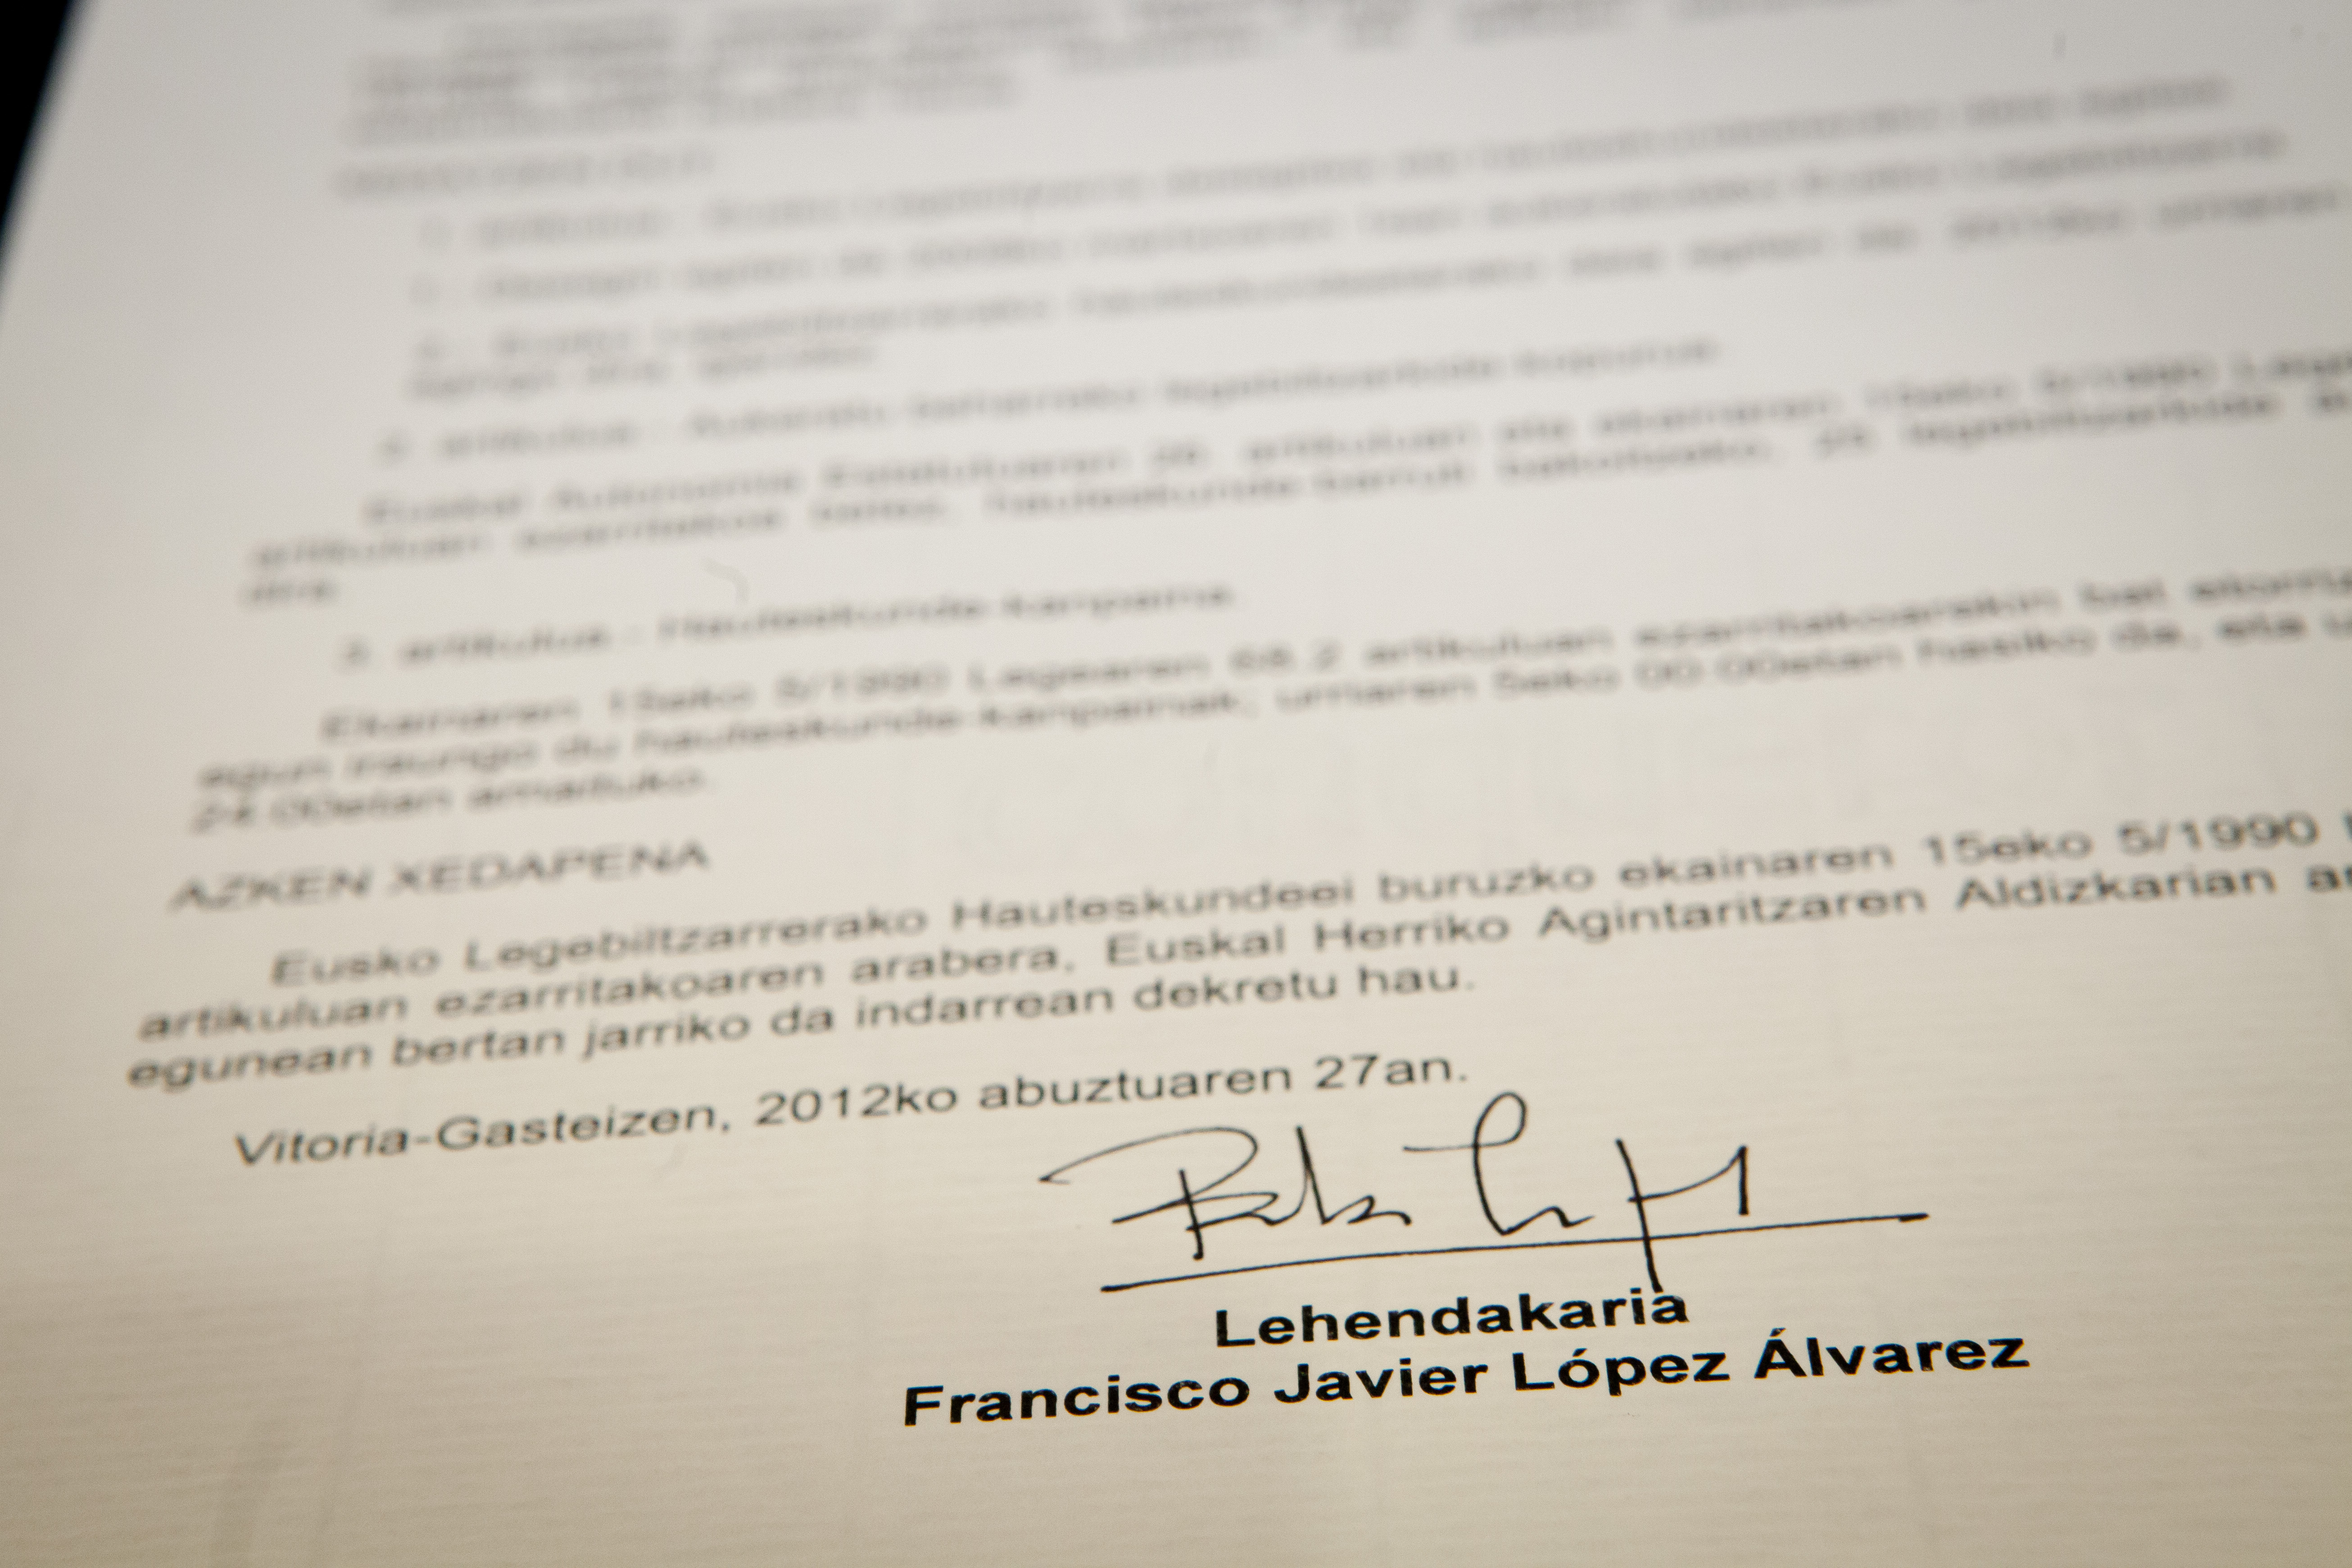 El Lehendakari firma el Decreto de disolucin del Parlamento Vasco